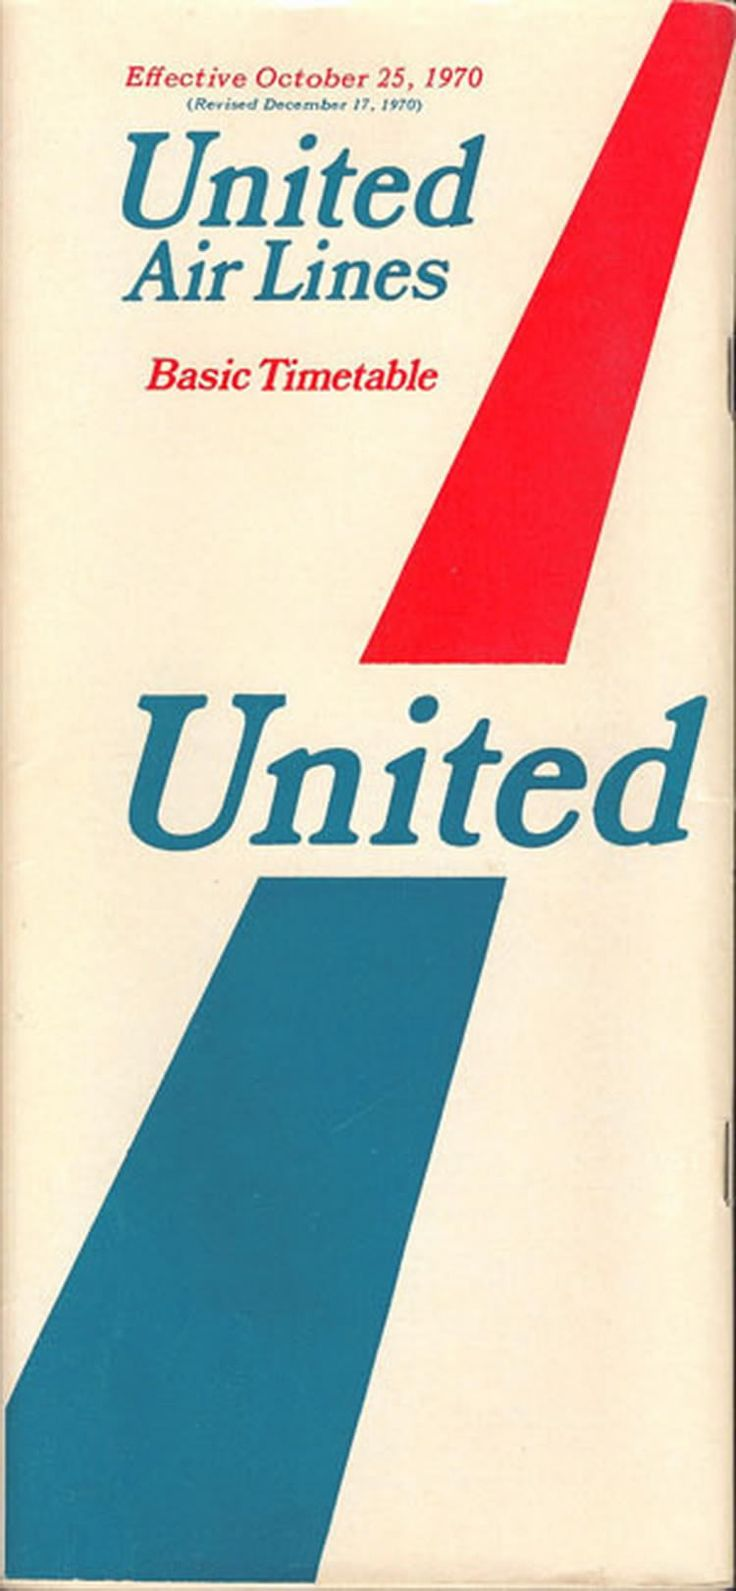 vintage airline timetables | VINTAGE AIRLINE TIMETABLES | AIRLINES OF THE PAST | 1950s 1960s 1970s ...